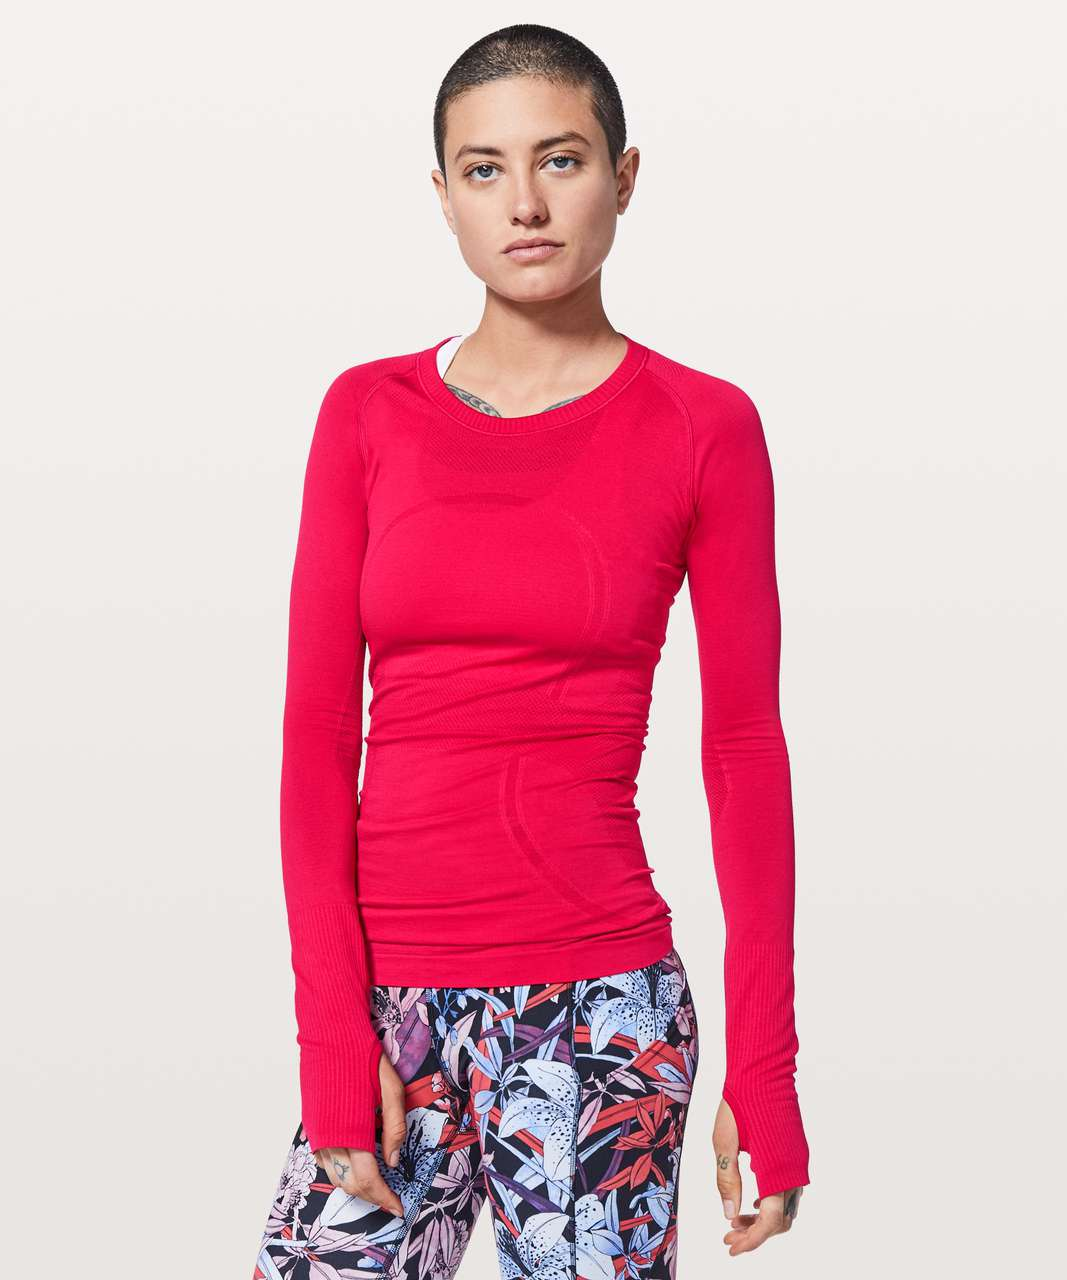 59ceeb5605bc Lululemon Swiftly Tech Long Sleeve Crew - Flamenco Red / Flamenco Red -  lulu fanatics